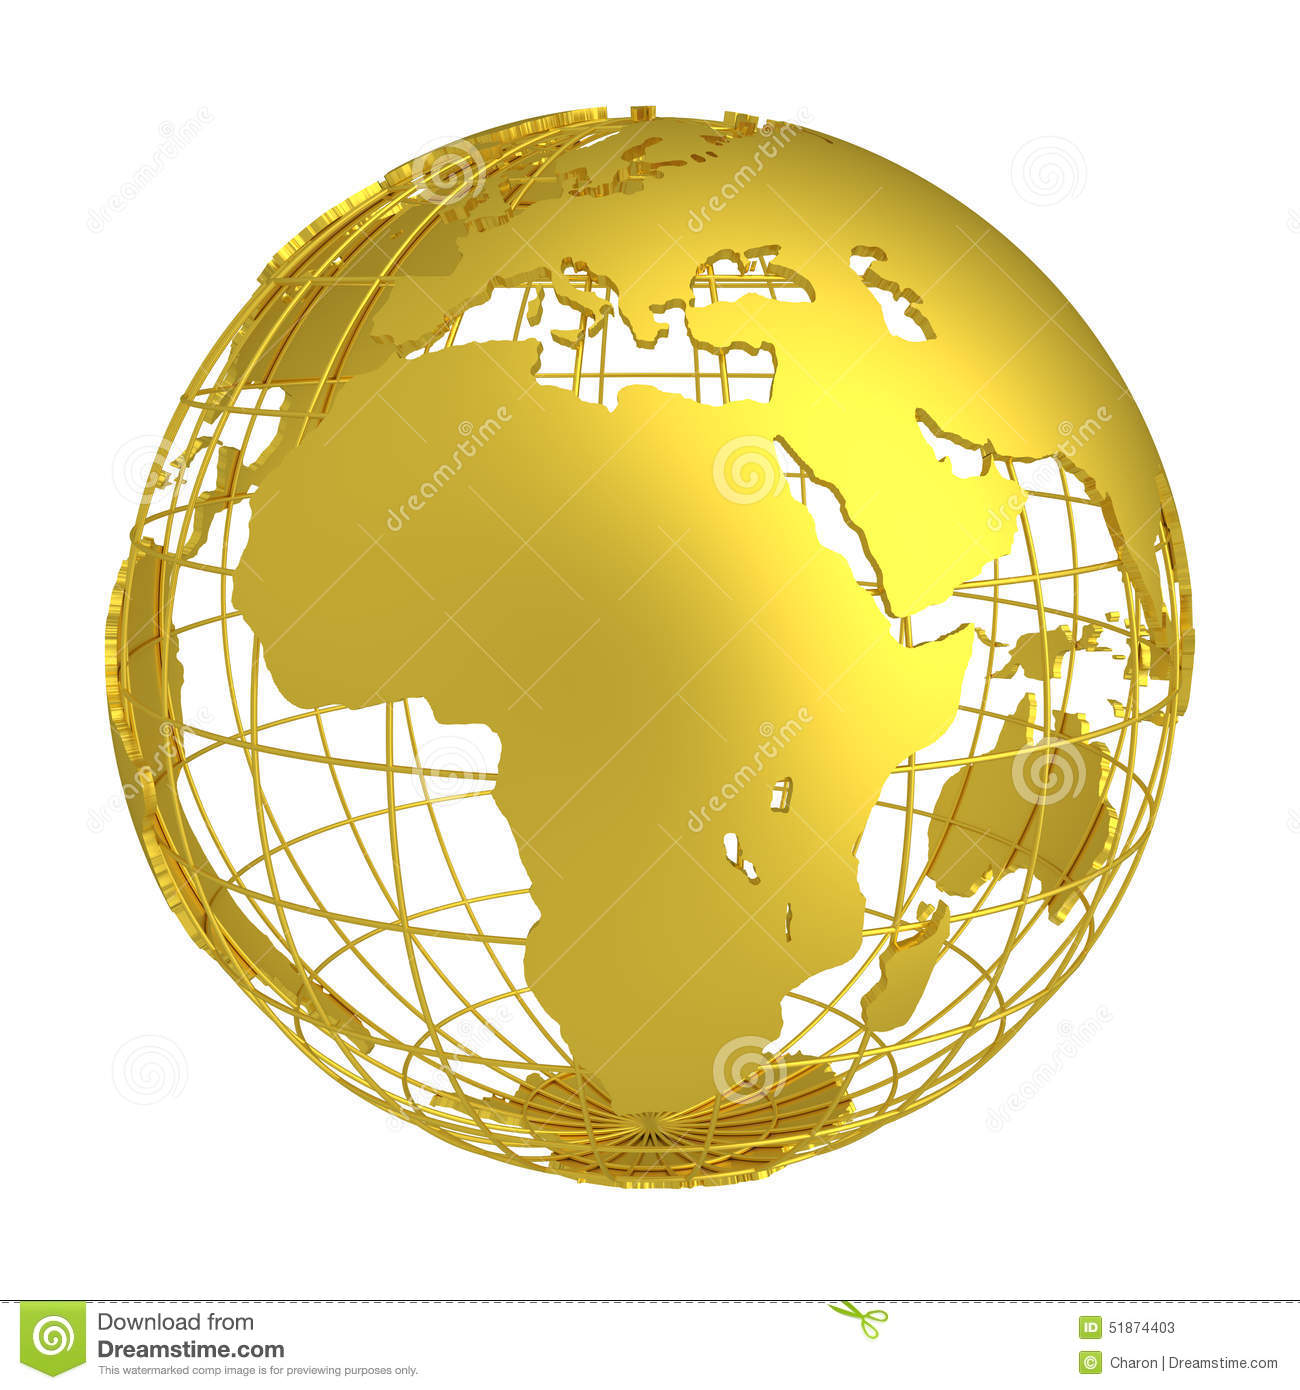 Earth Wireframe Gold Wire Center Lamp Making Supplies And Wiring Kits 30551a10 Table Golden Planet 3d Globe Isolated Stock Image Illustration Of Rh Dreamstime Com